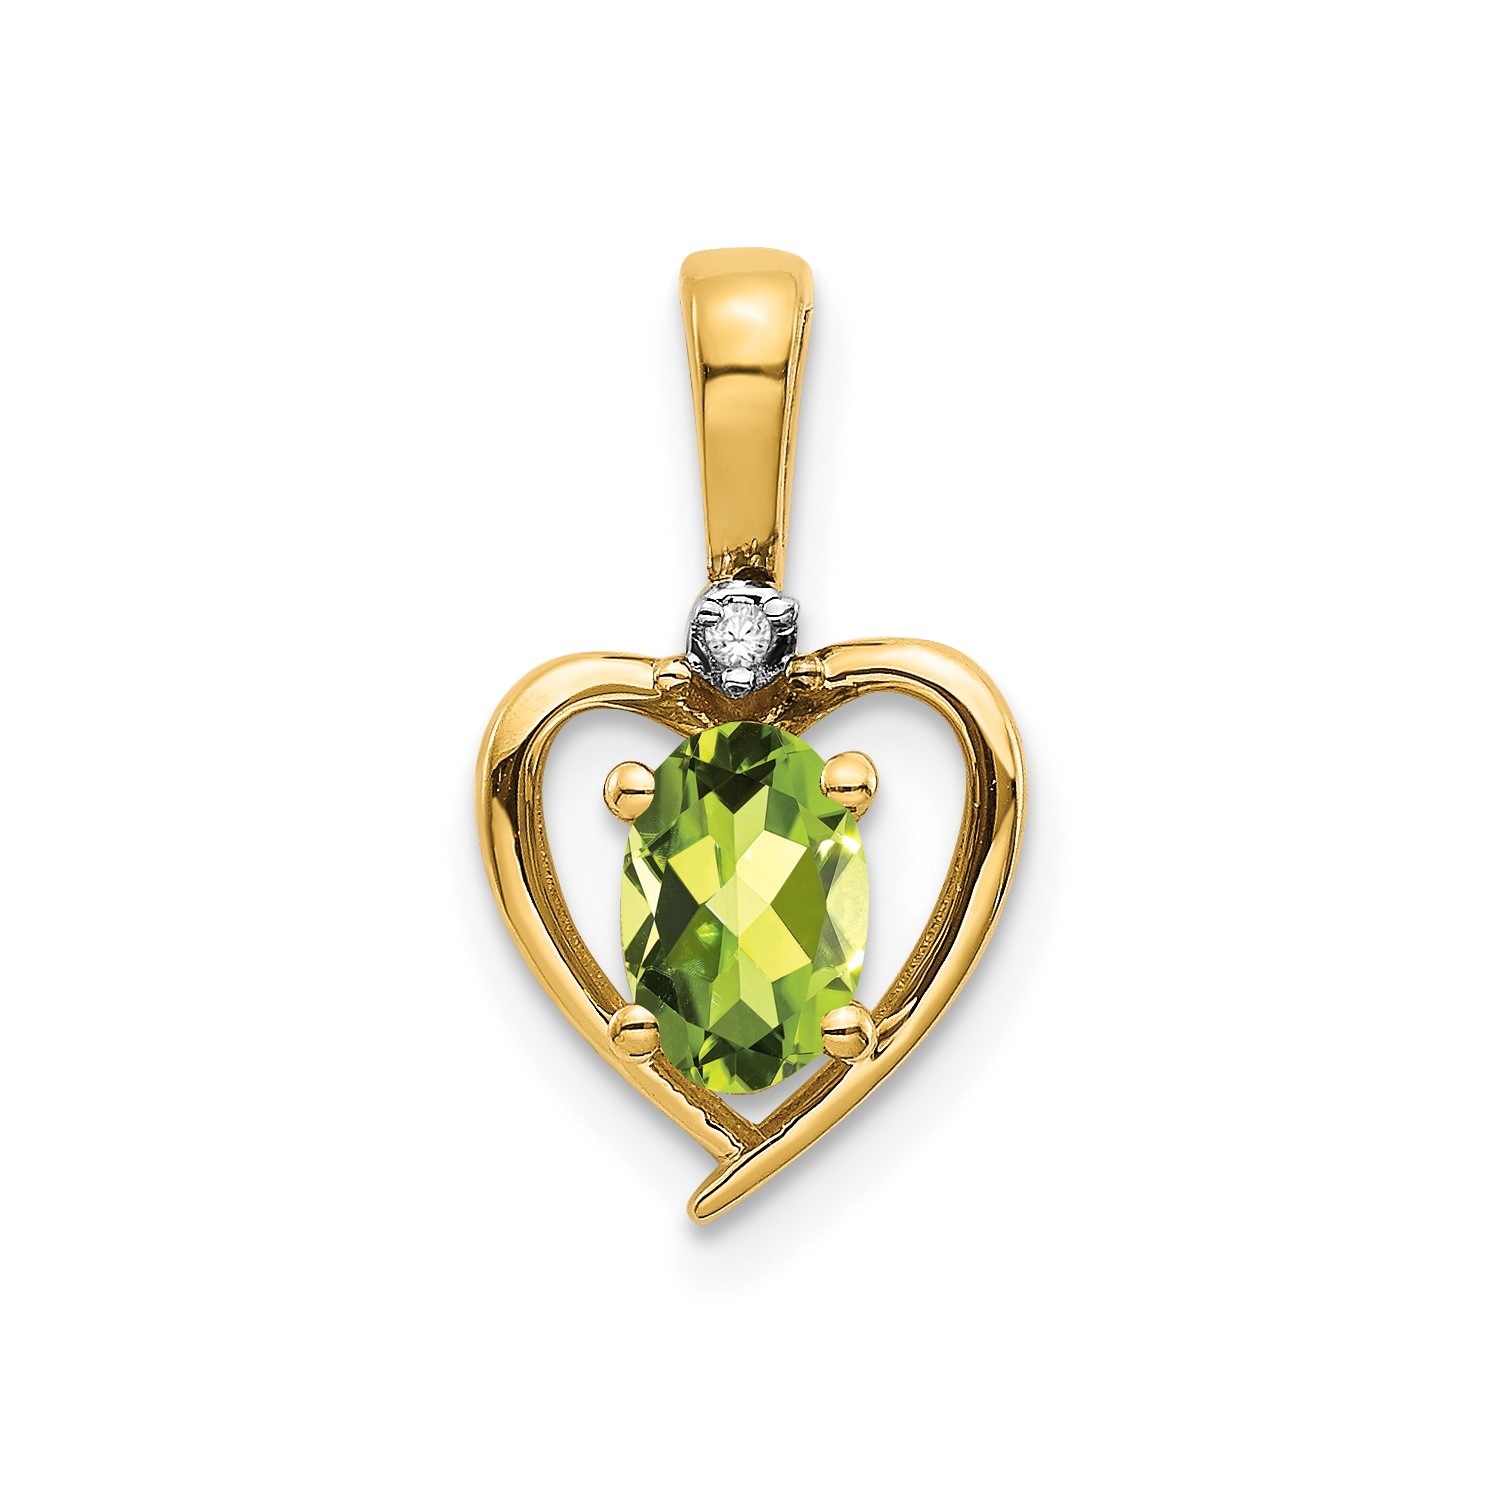 14k Yellow gold 6x4 Oval Diamond & Peridot Pendant CT Wt- 0.47ct (0.6IN long)